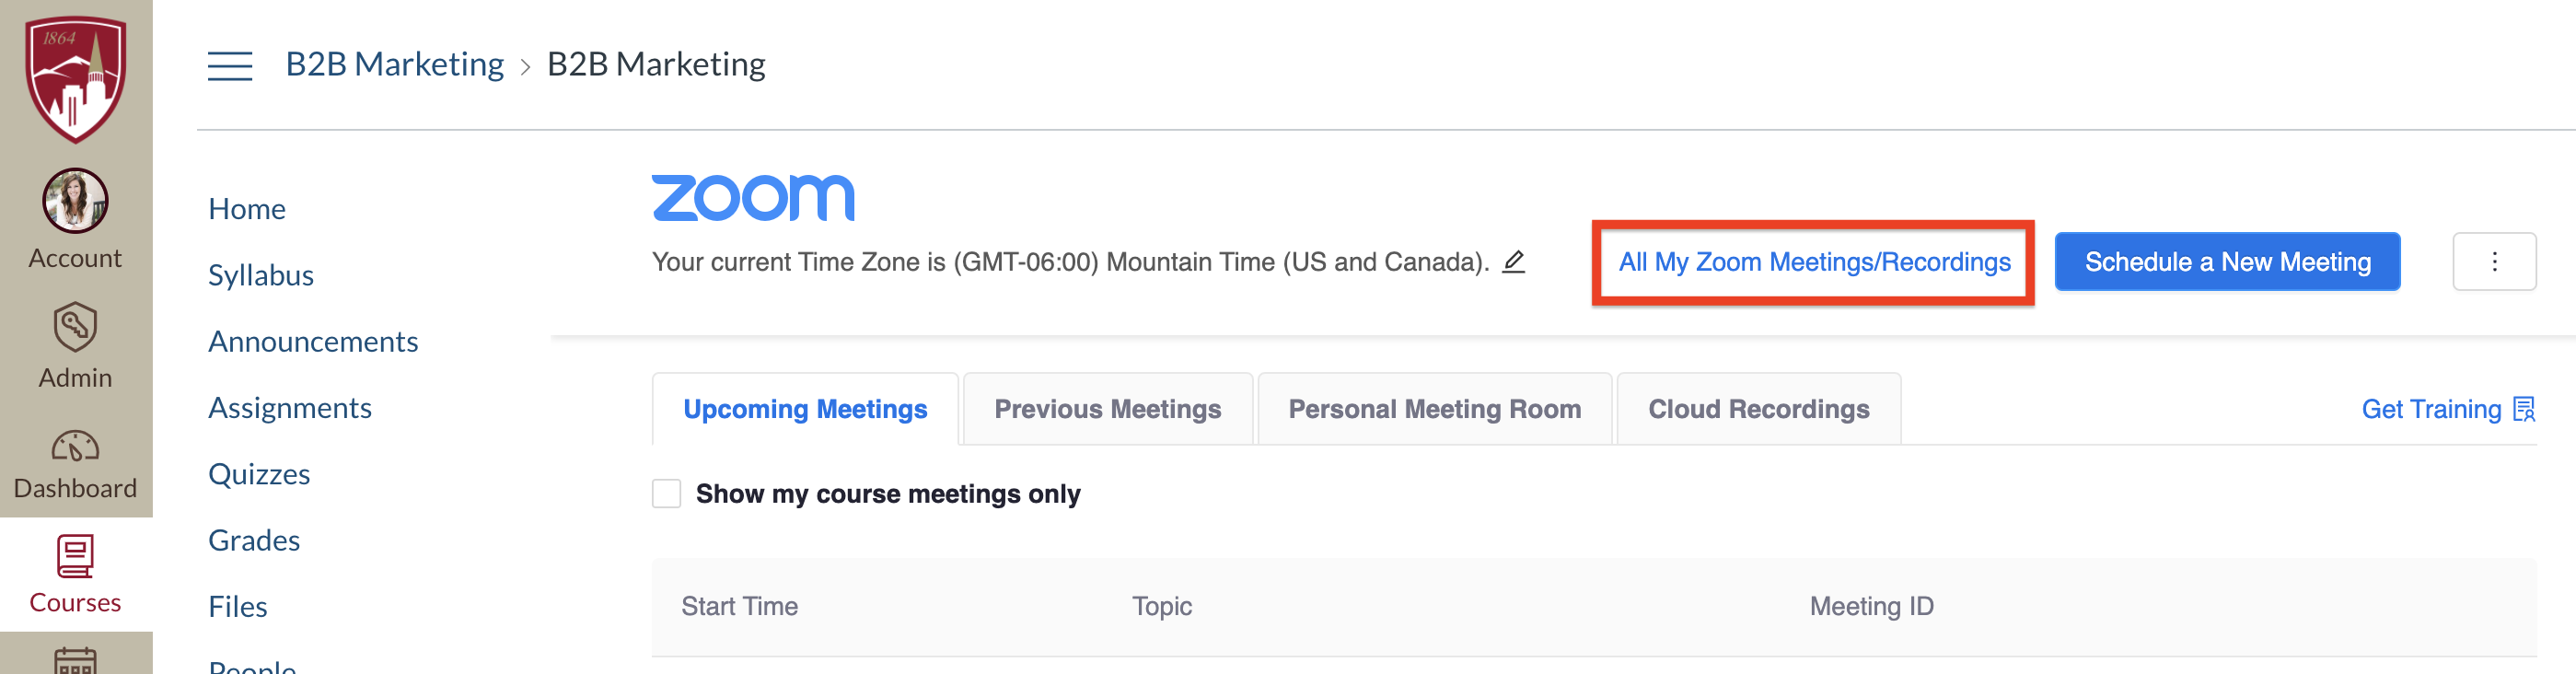 View All Zoom meetings from canvas